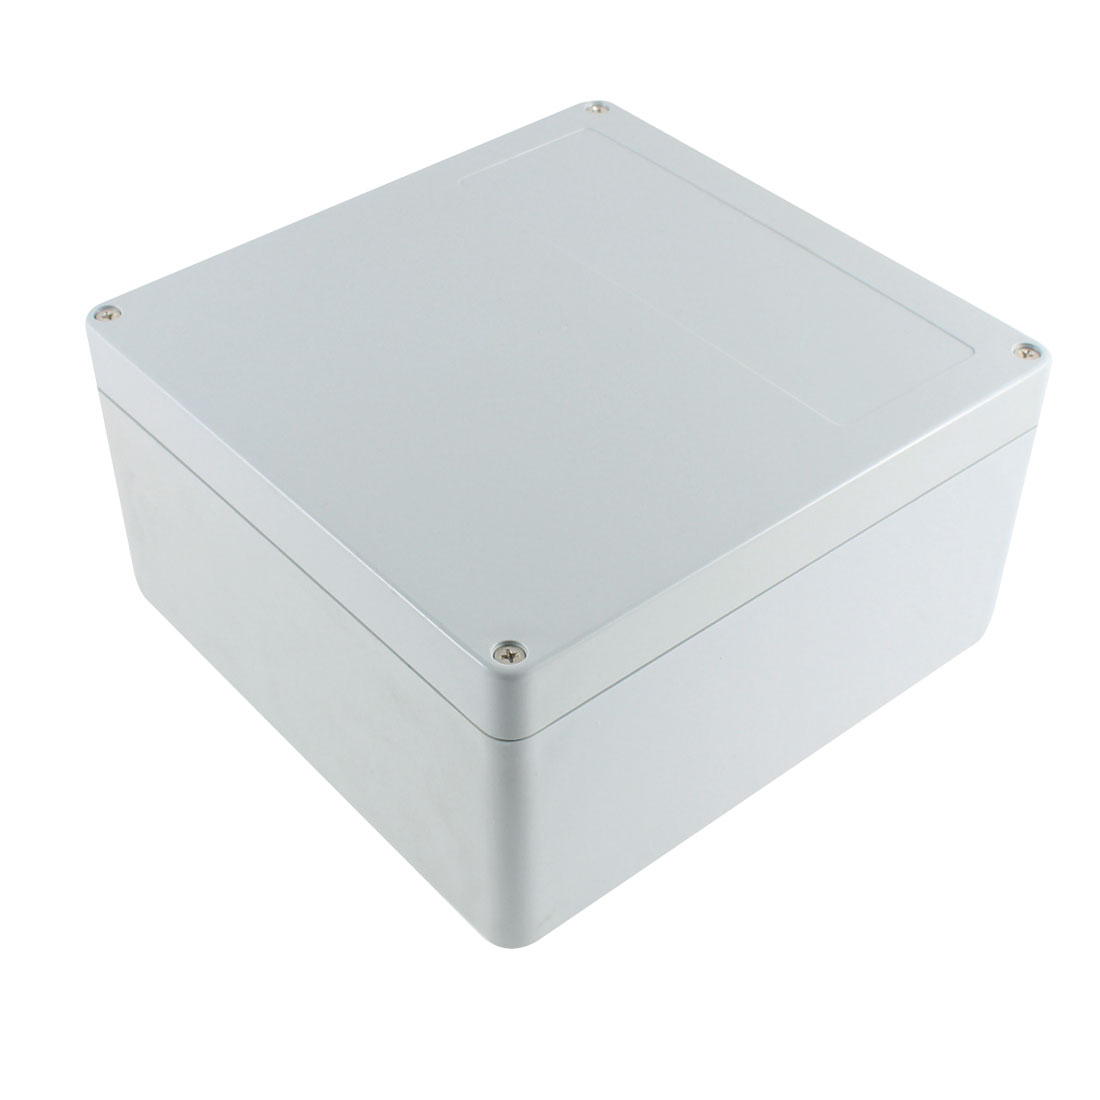 Dustproof IP65 Junction Electronic Project Box Case 190 x 185 x 100mm